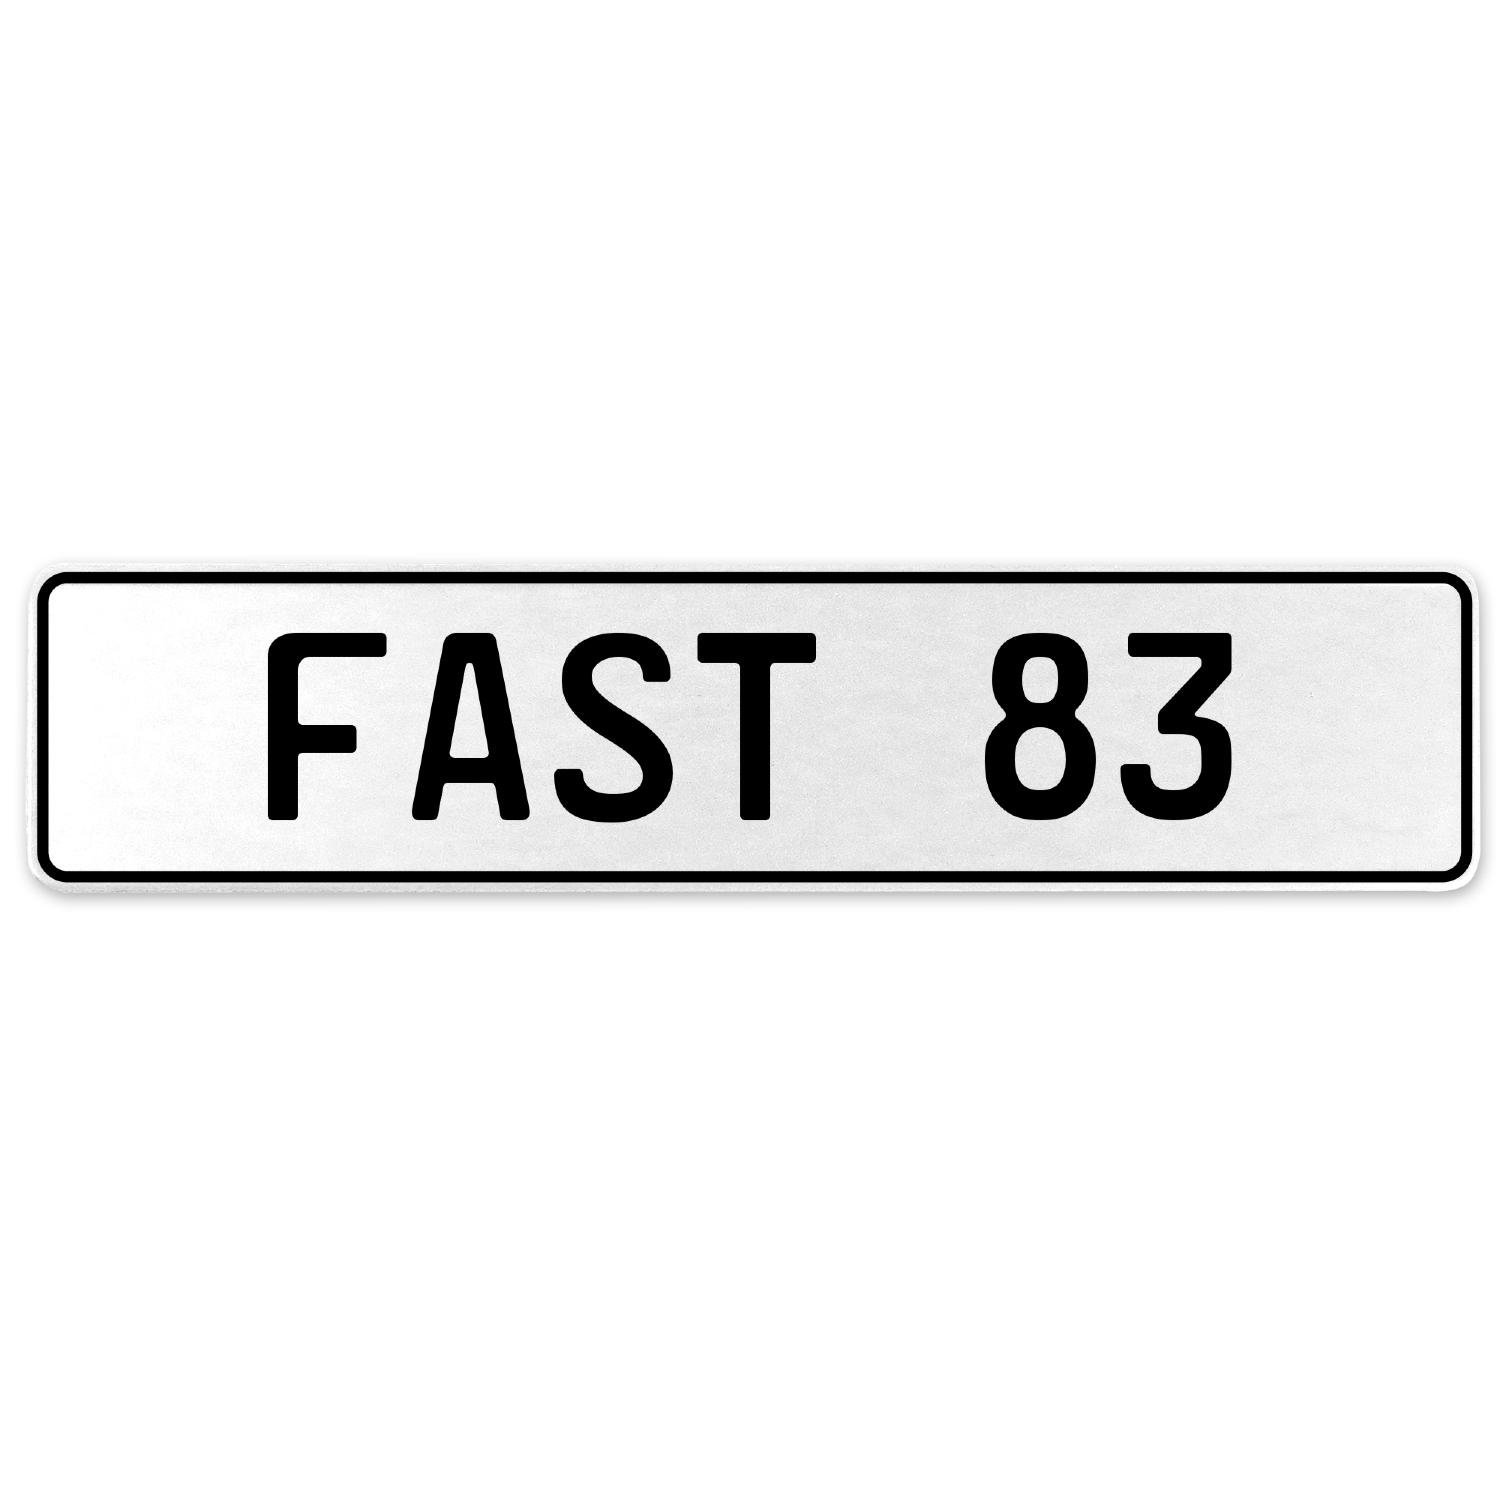 Vintage Parts 557353 Fast 83 White Stamped Aluminum European License Plate